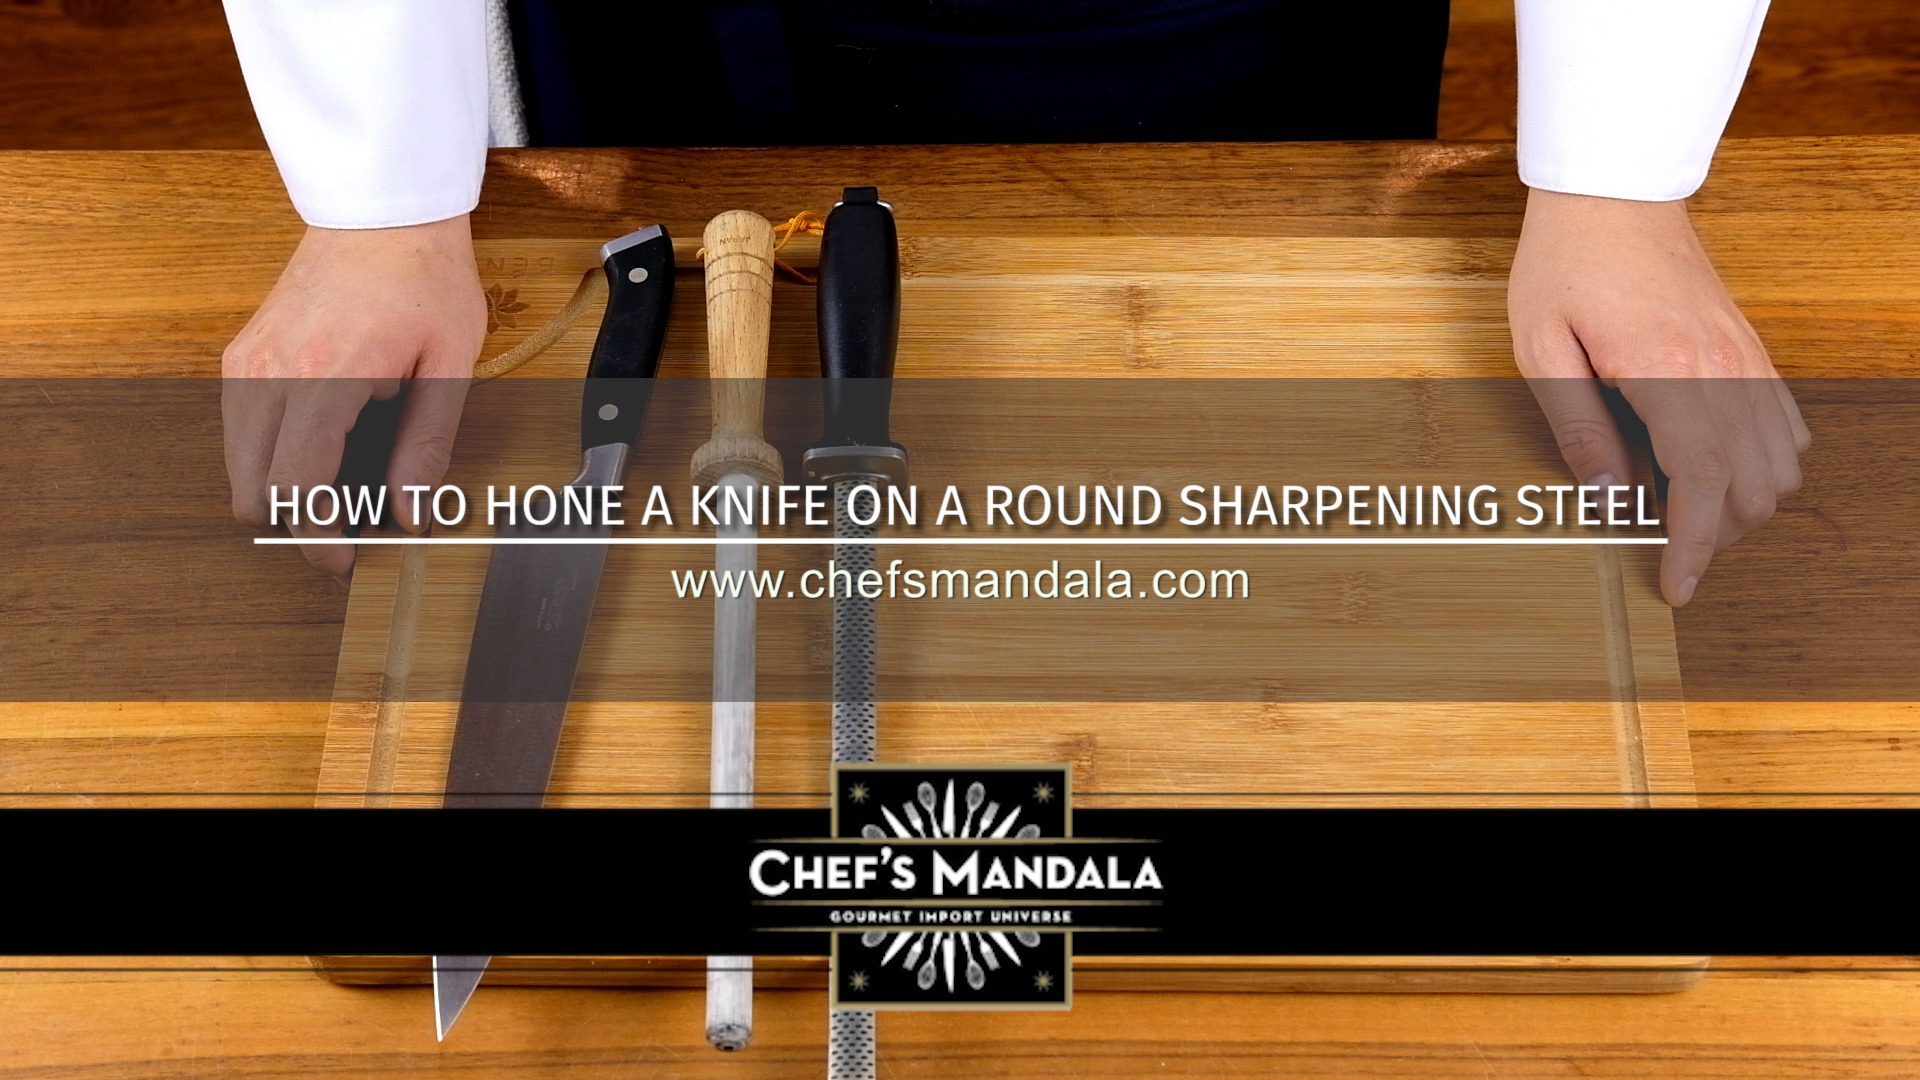 HOW TO HONE YOUR KNIFE ON A ROUND SHARPENING STEELE